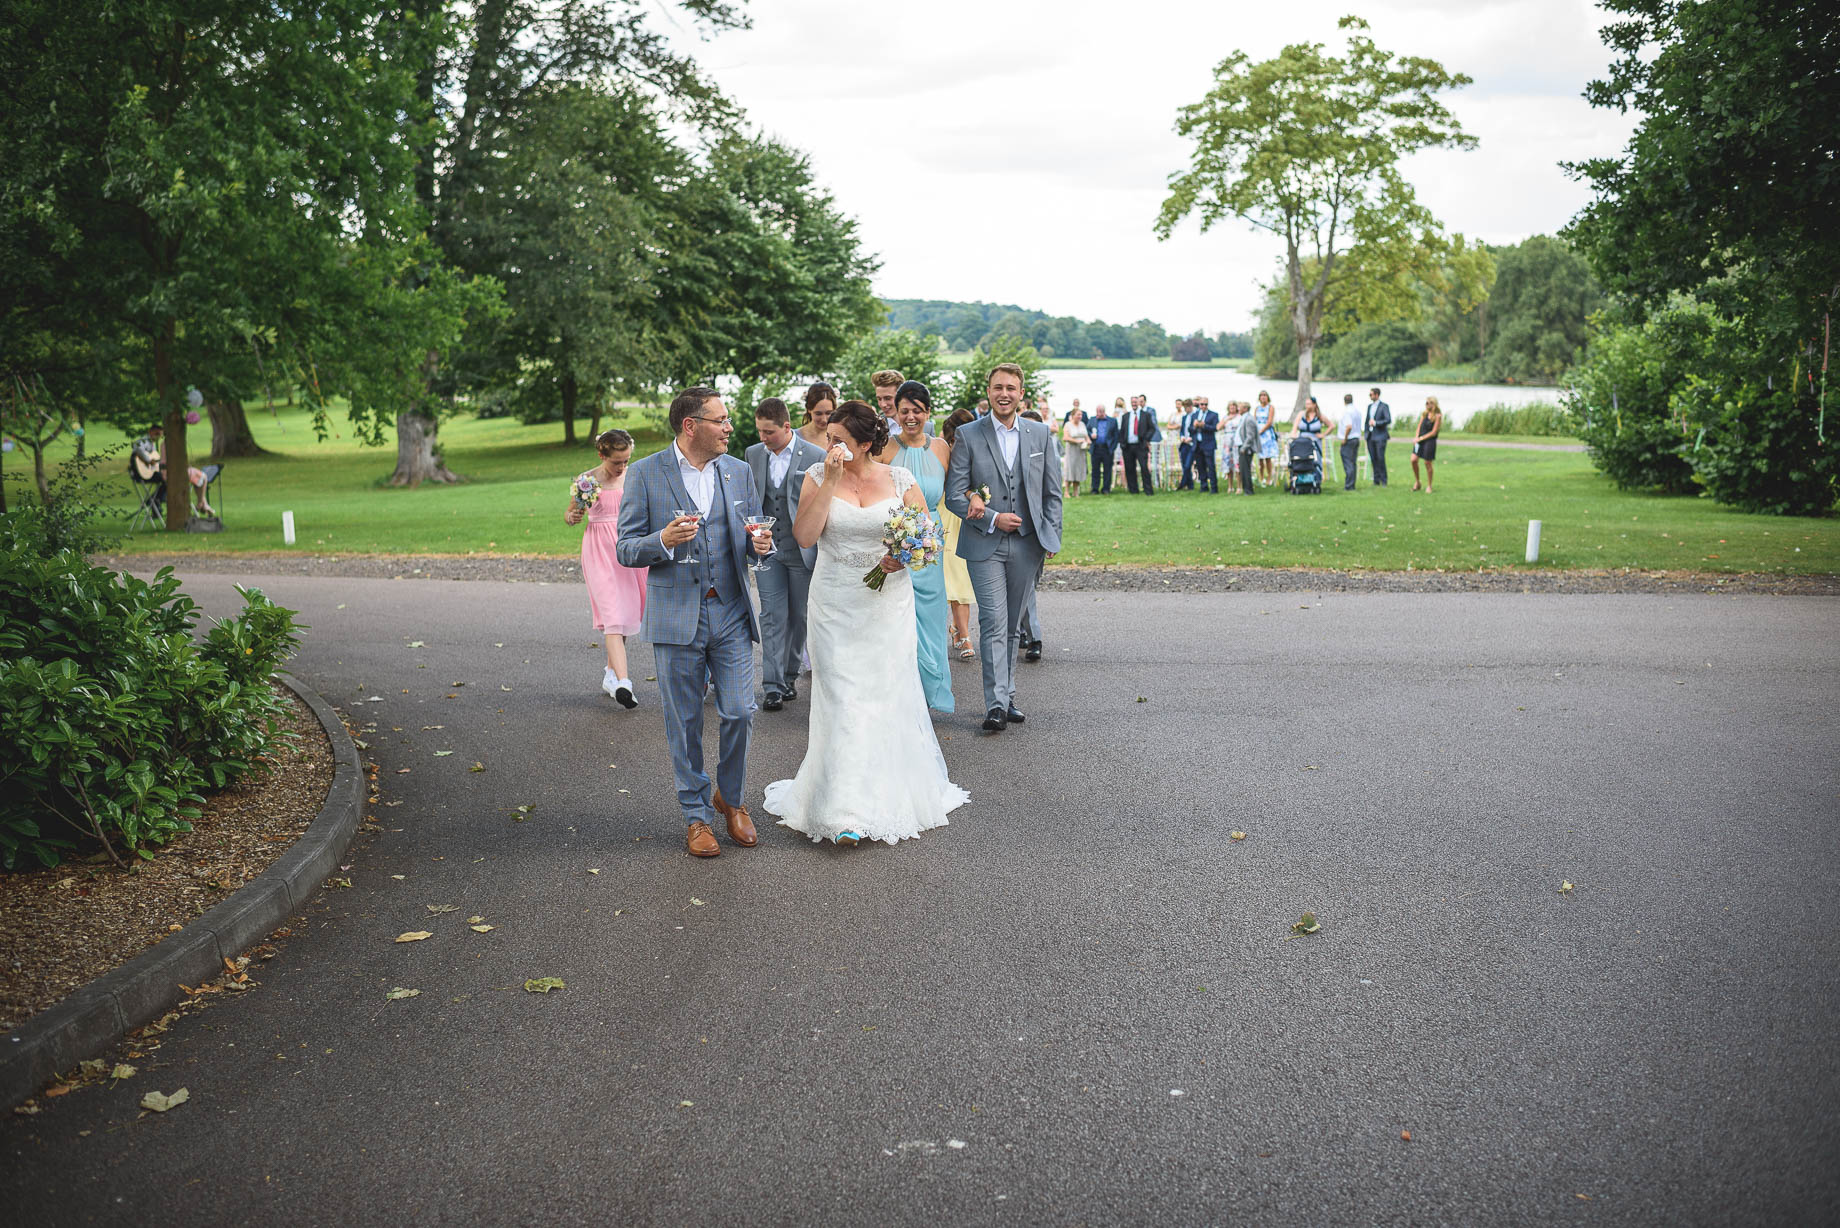 Luton Hoo wedding photography by Guy Collier Photography - Lauren and Gem (79 of 178)